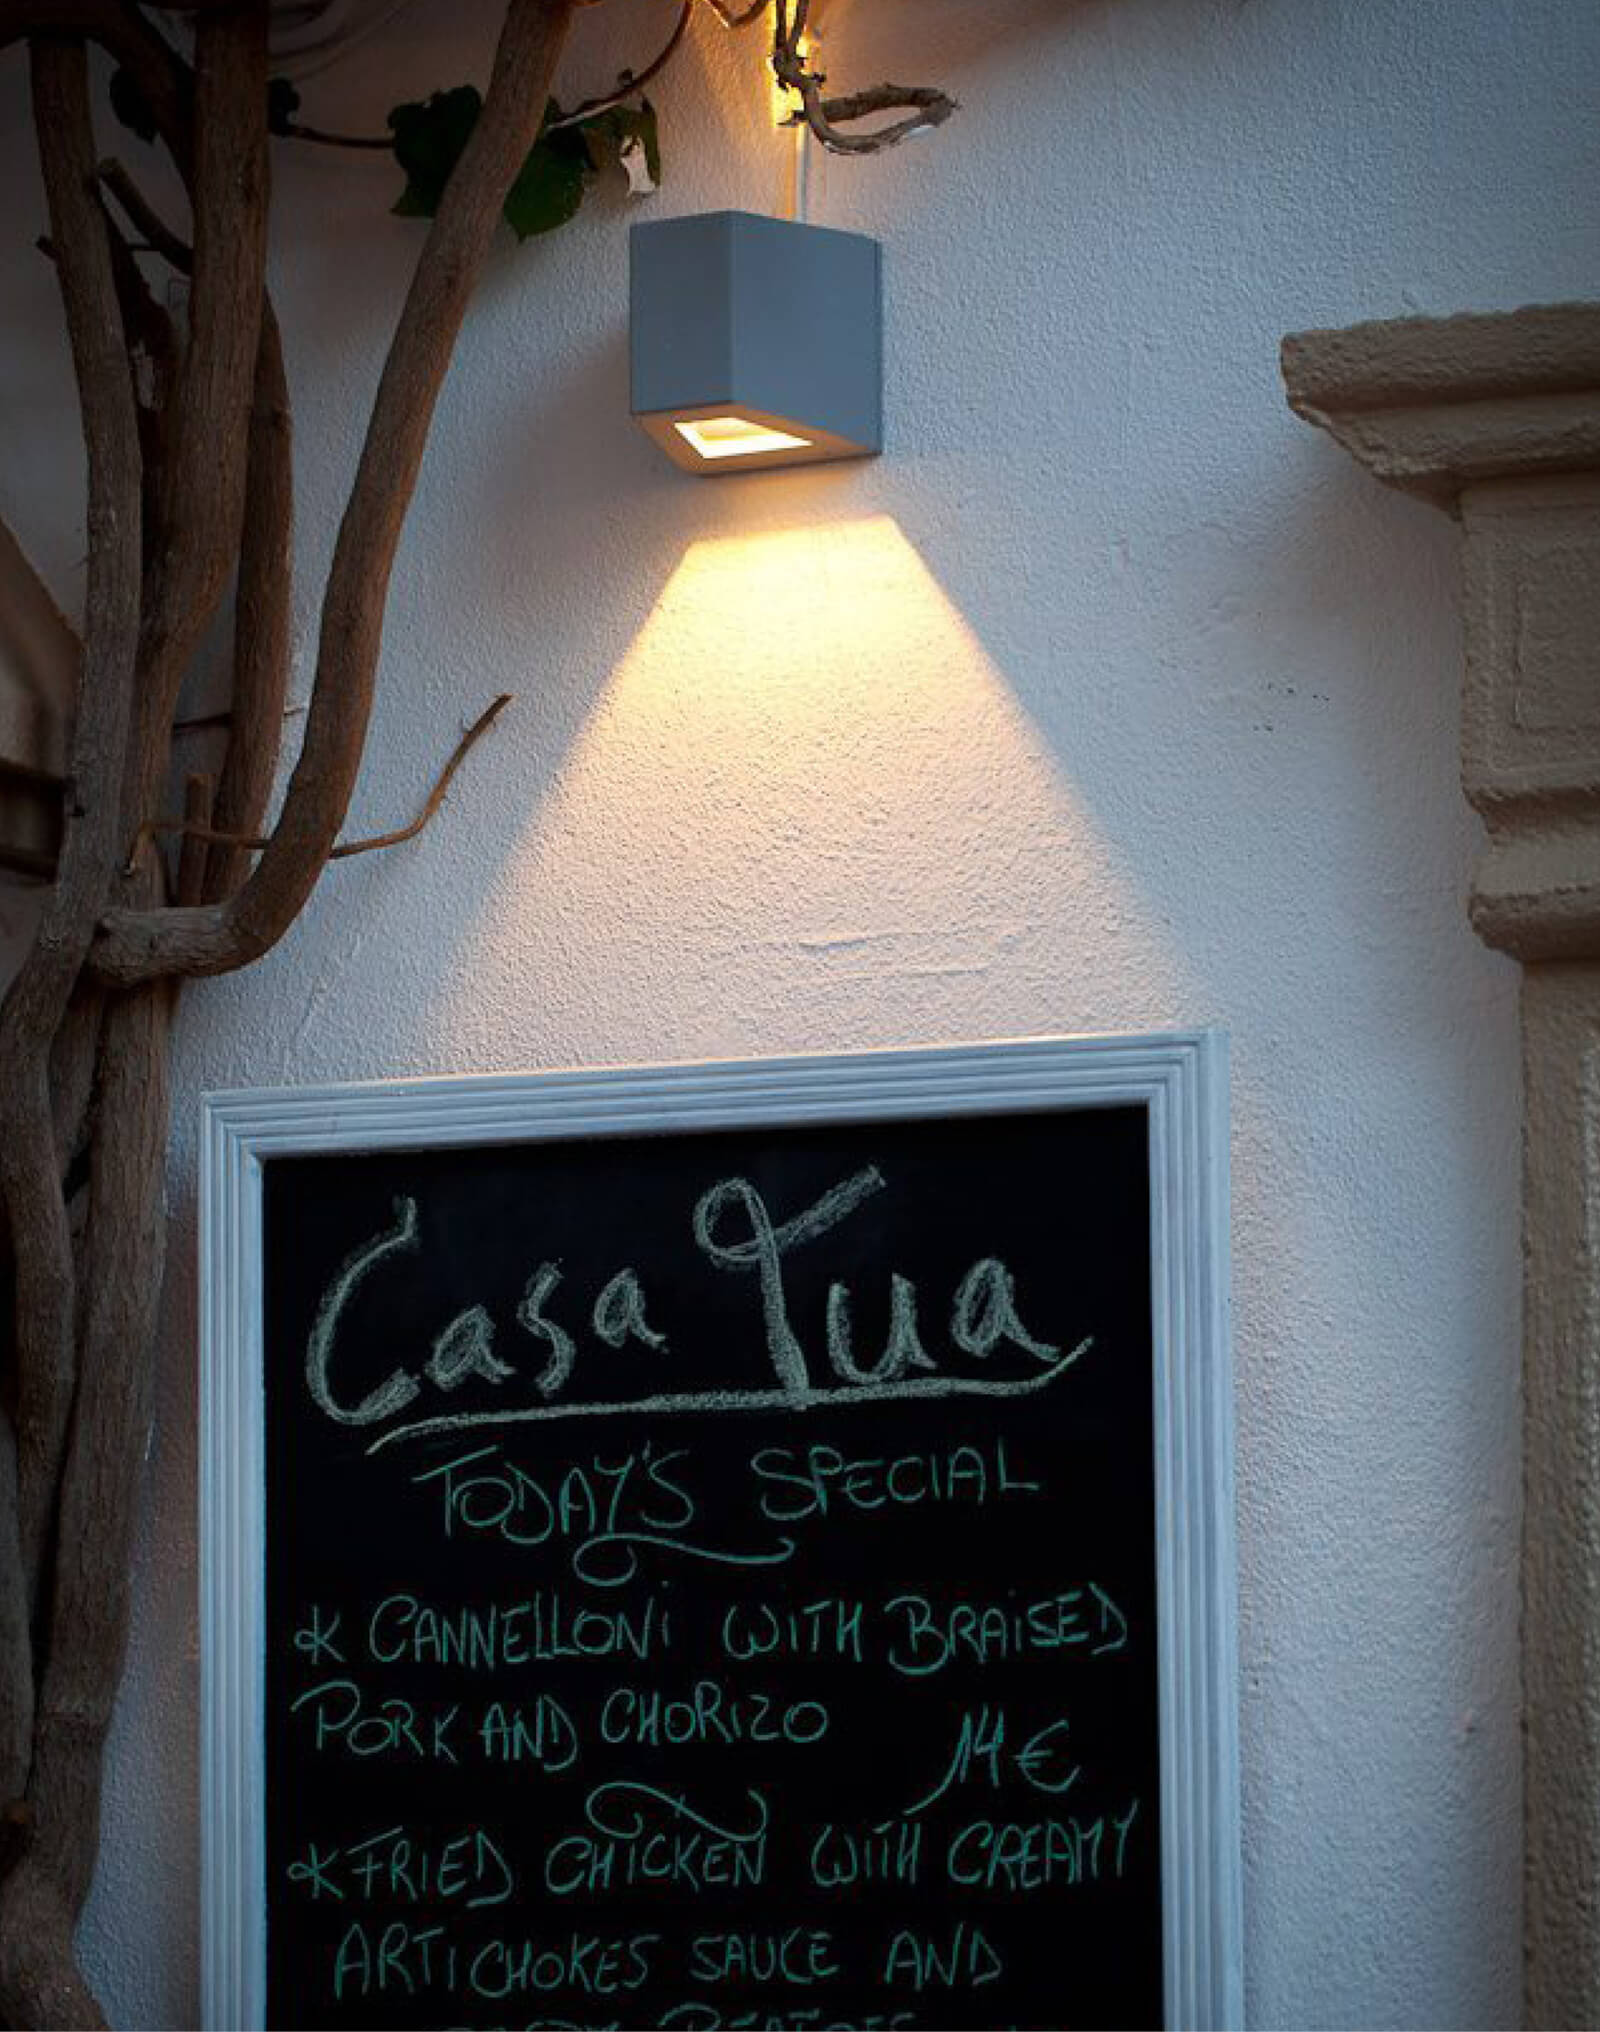 Casa Tua Restaurant menu board